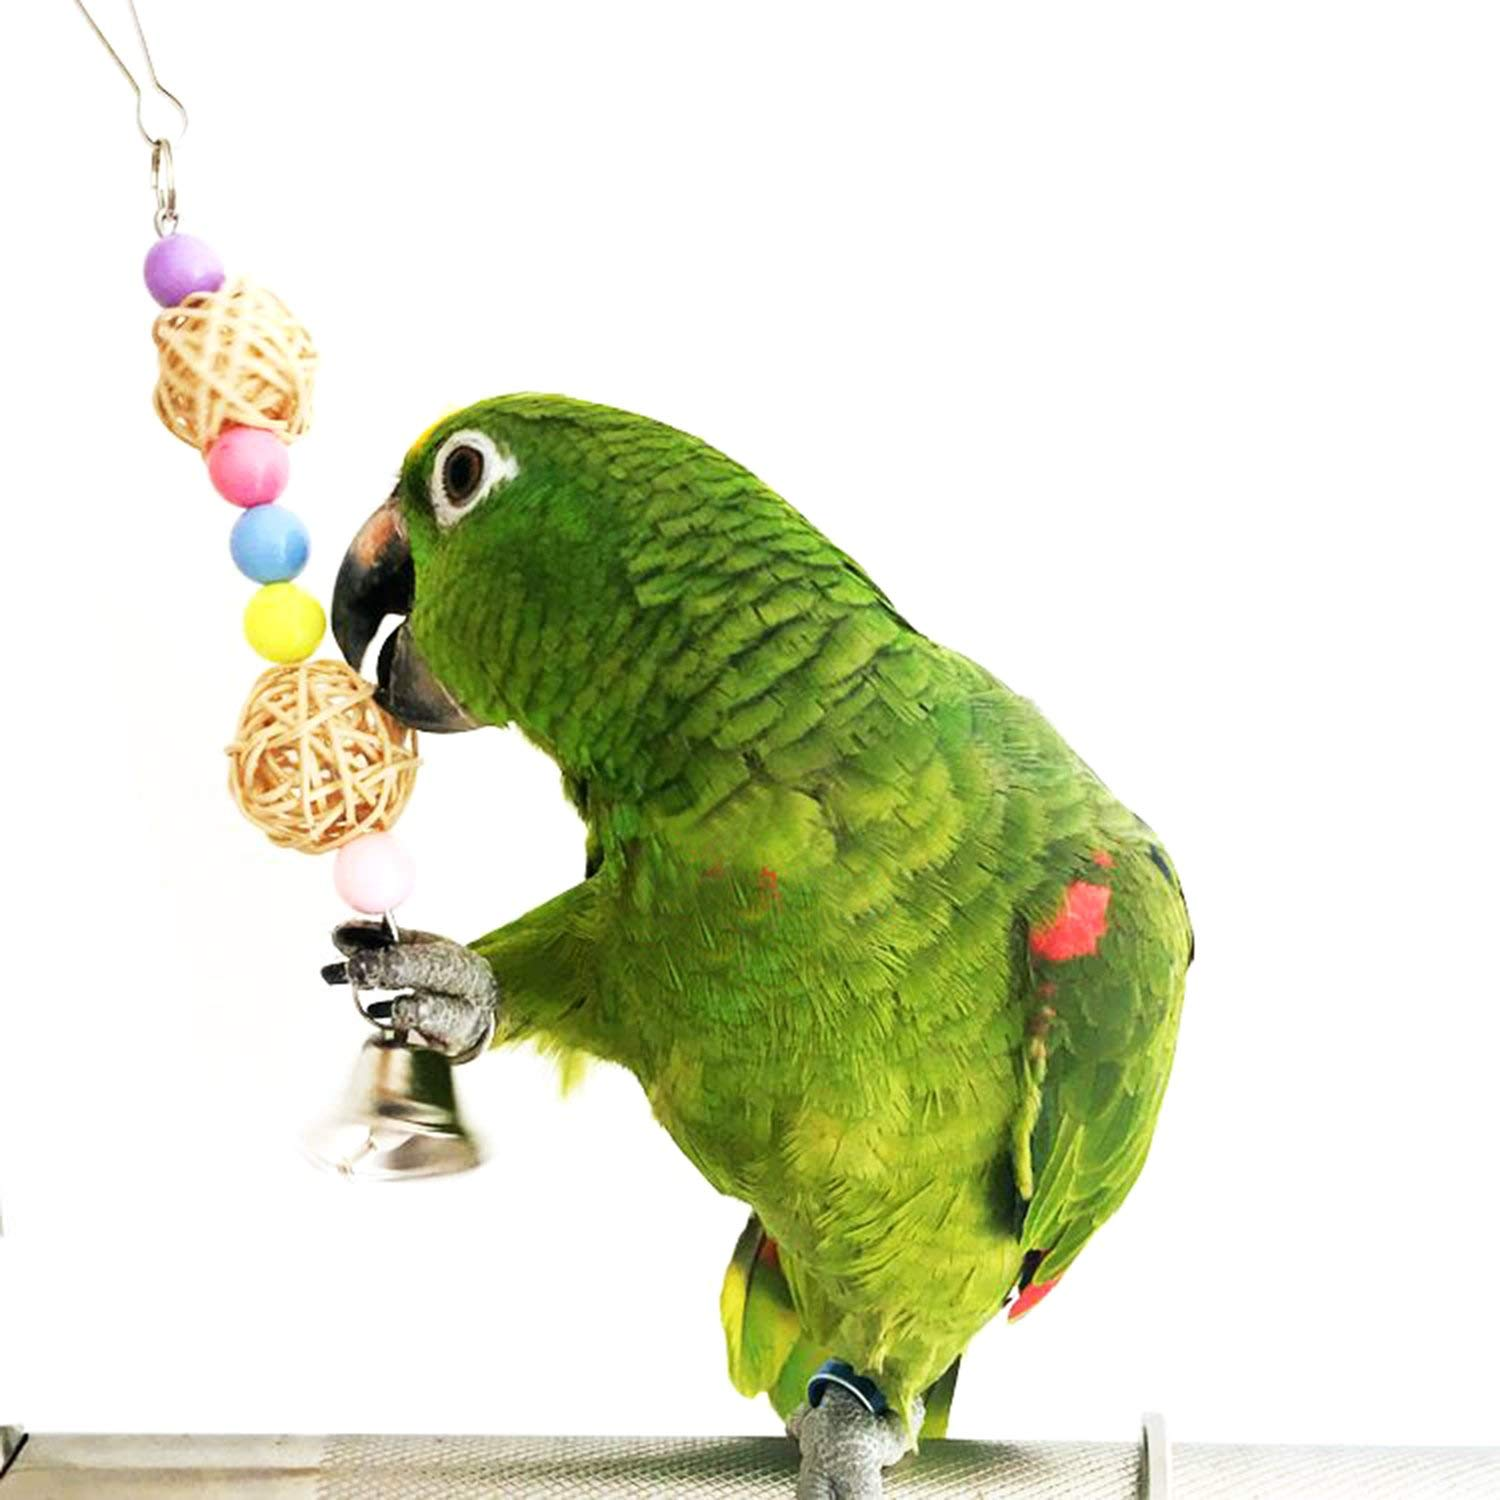 Macaws Parrots Conures Finches 5pcs Bird Parrot Toys Hanging Bell Pet Bird Cage Hammock Swing Toy Hanging Toy for Small Parakeets Cockatiels Love Birds